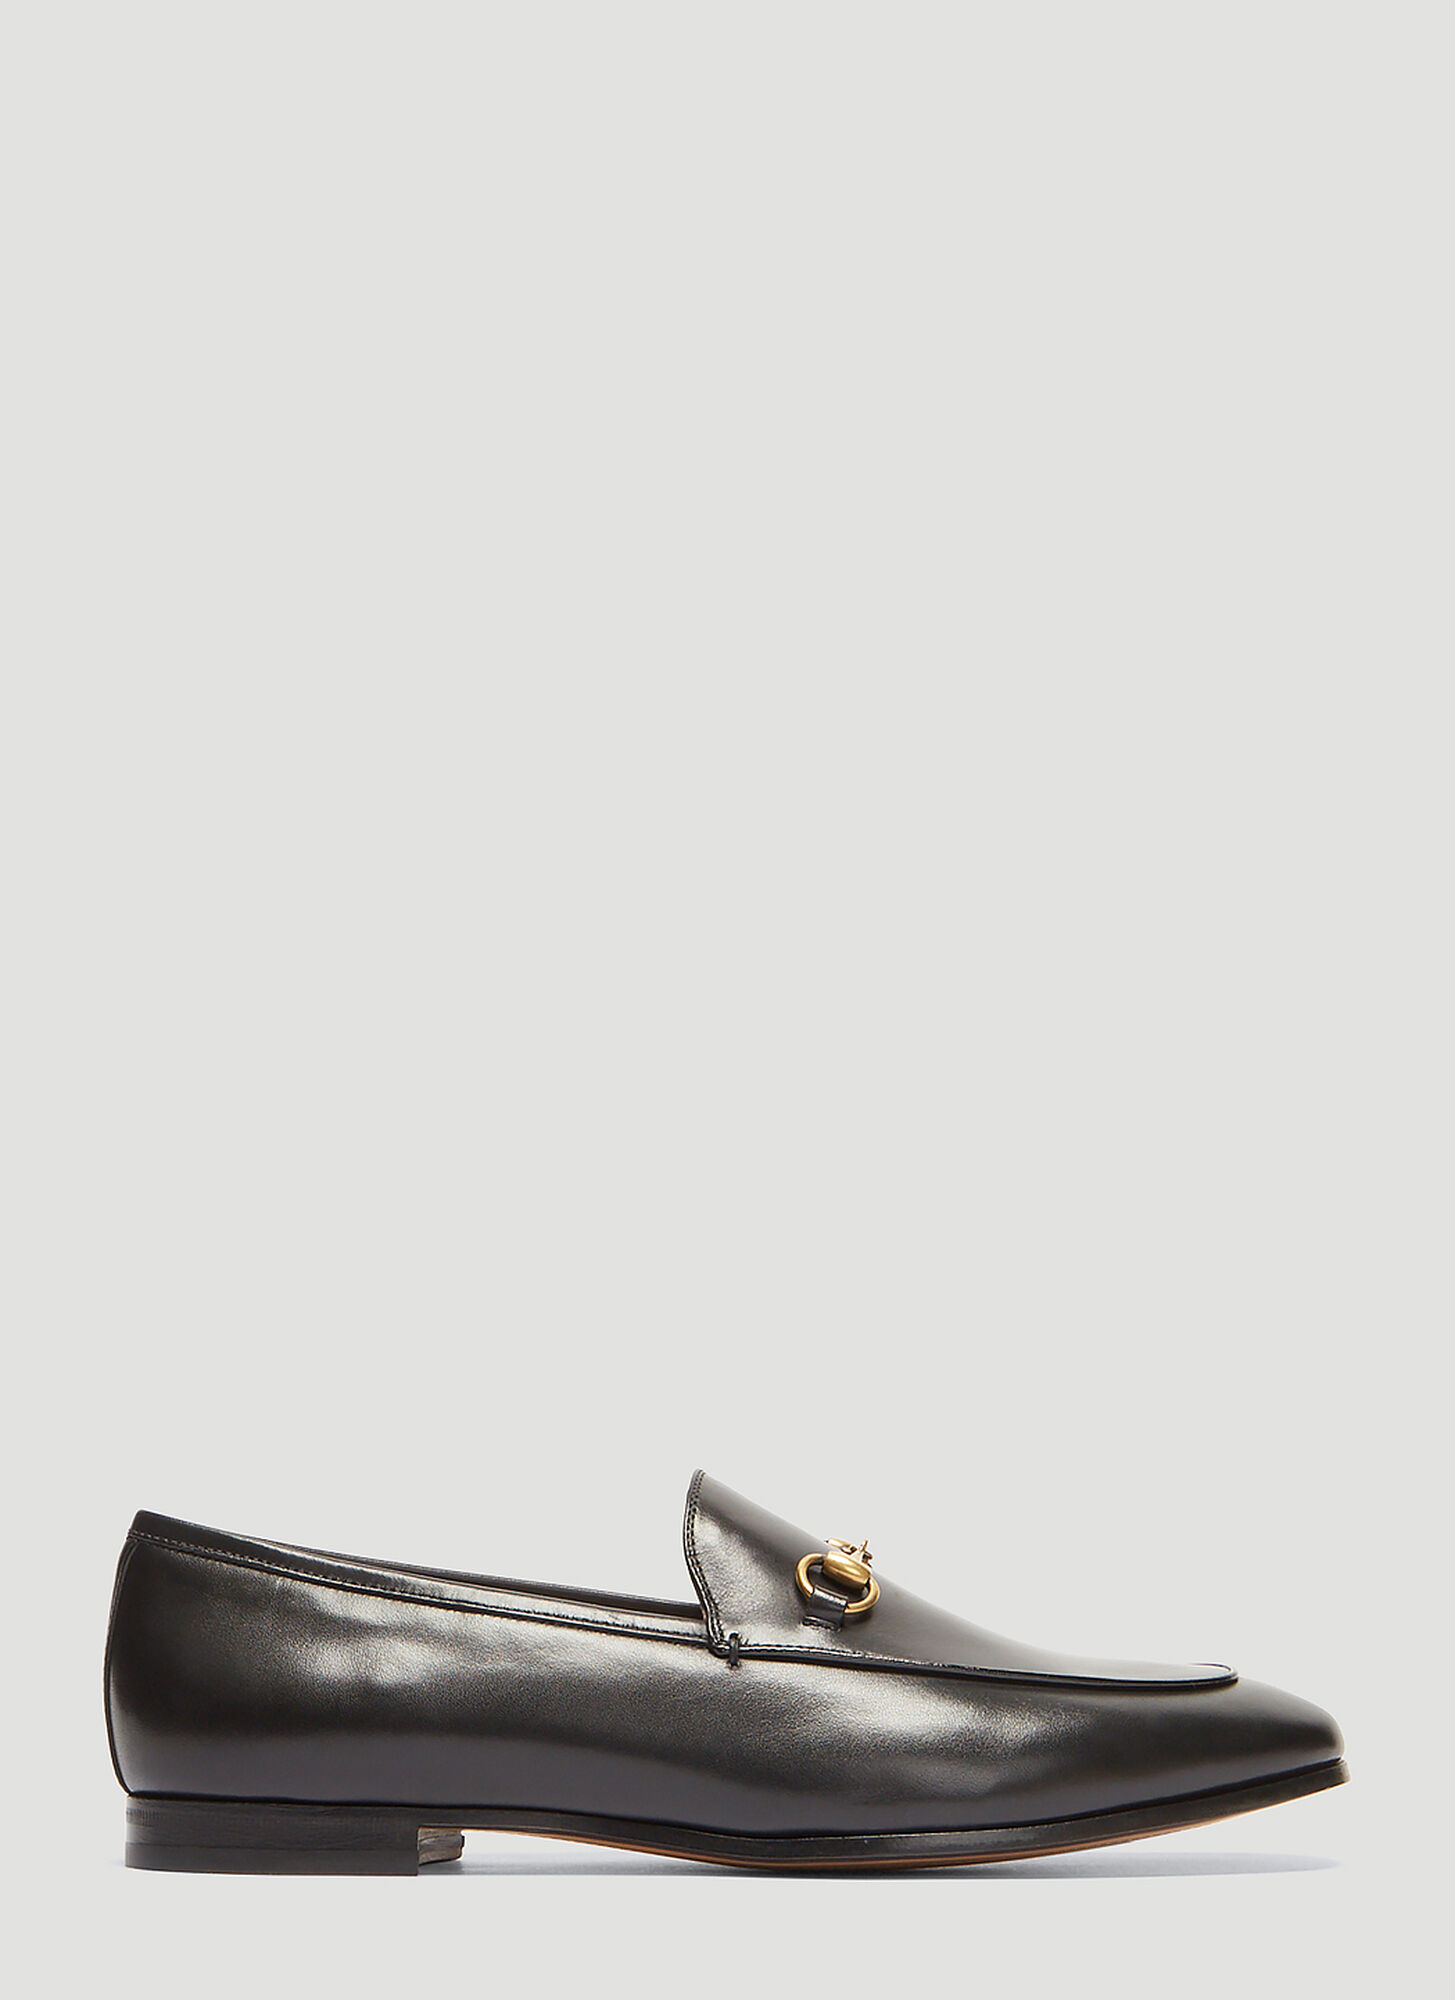 Gucci Jordaan Leather Loafer in Black